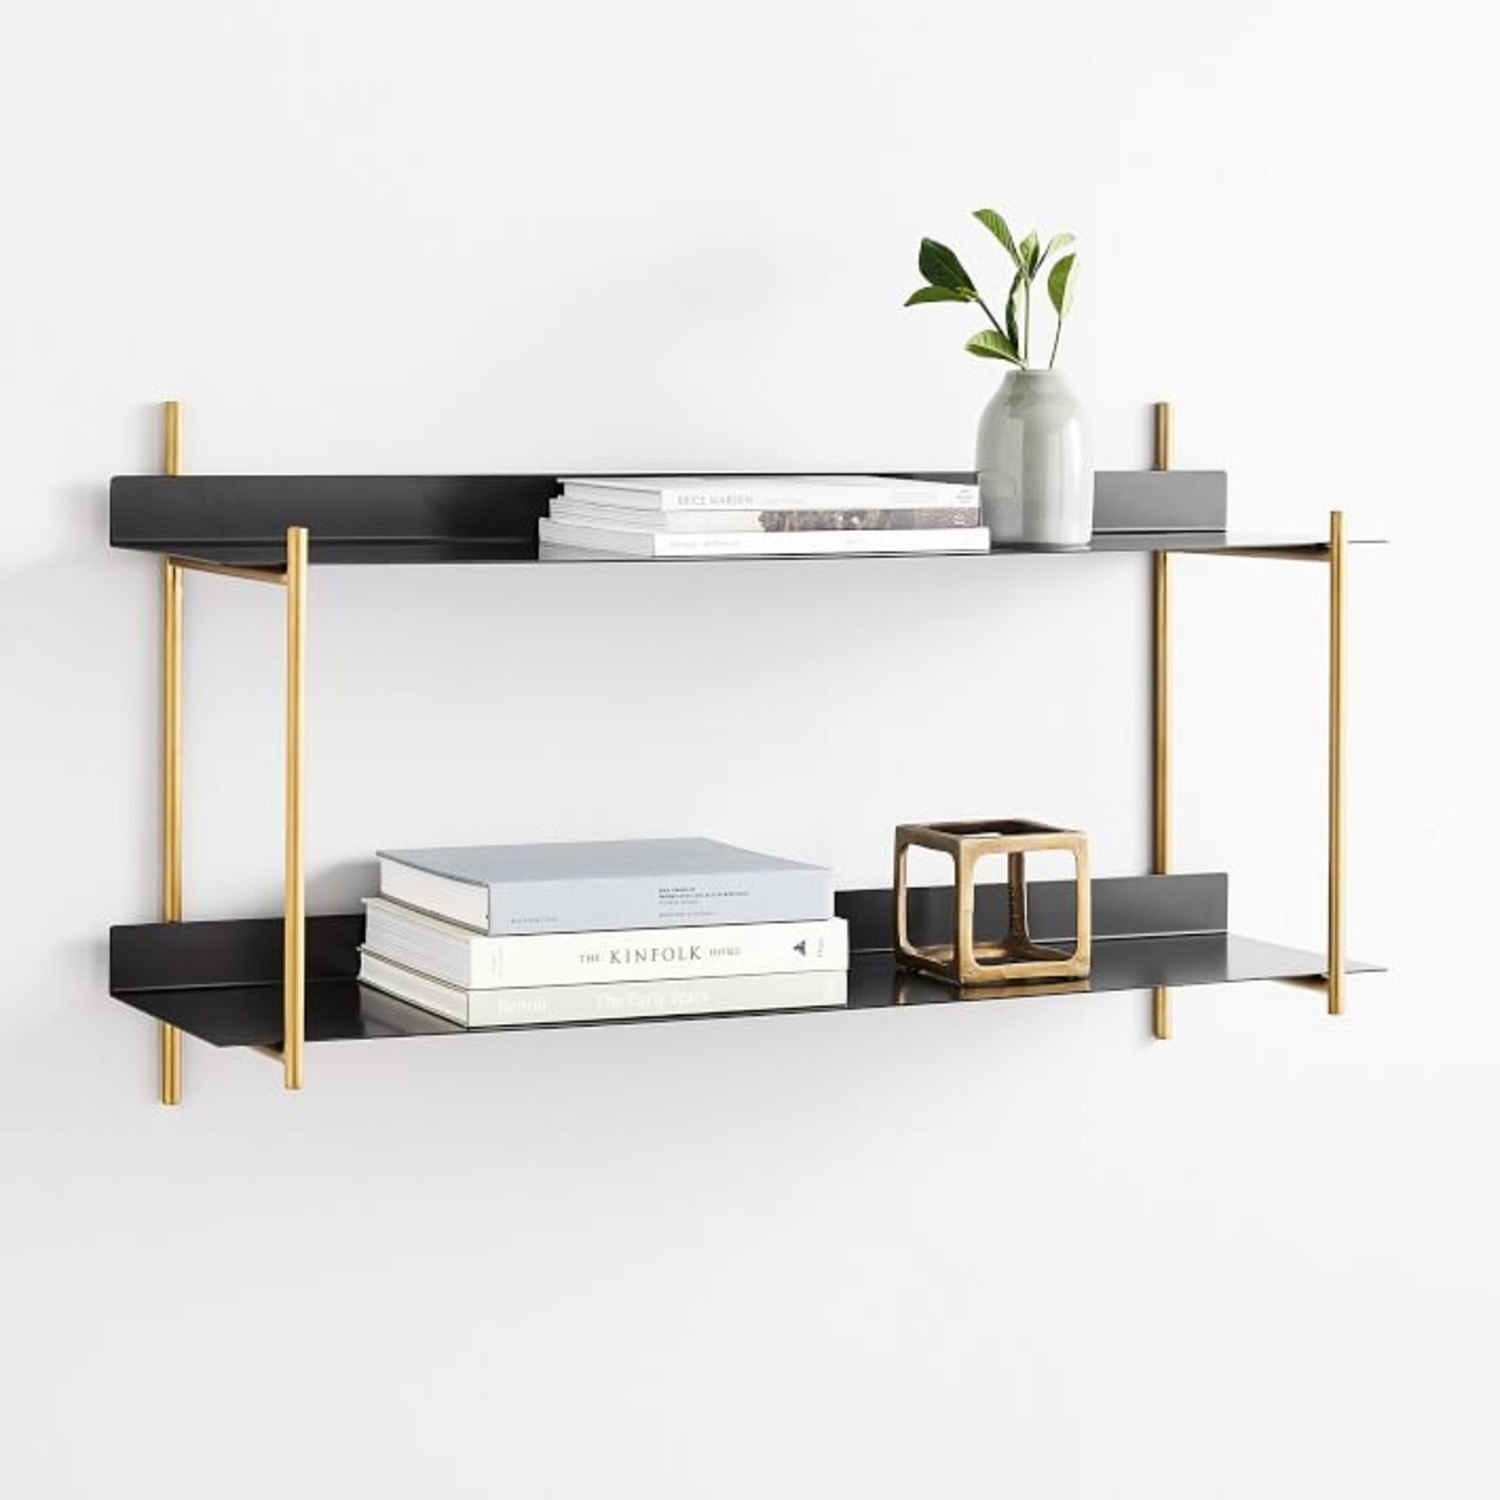 West Elm Floating Lines 2- Tiered Wall Shelf - image-3